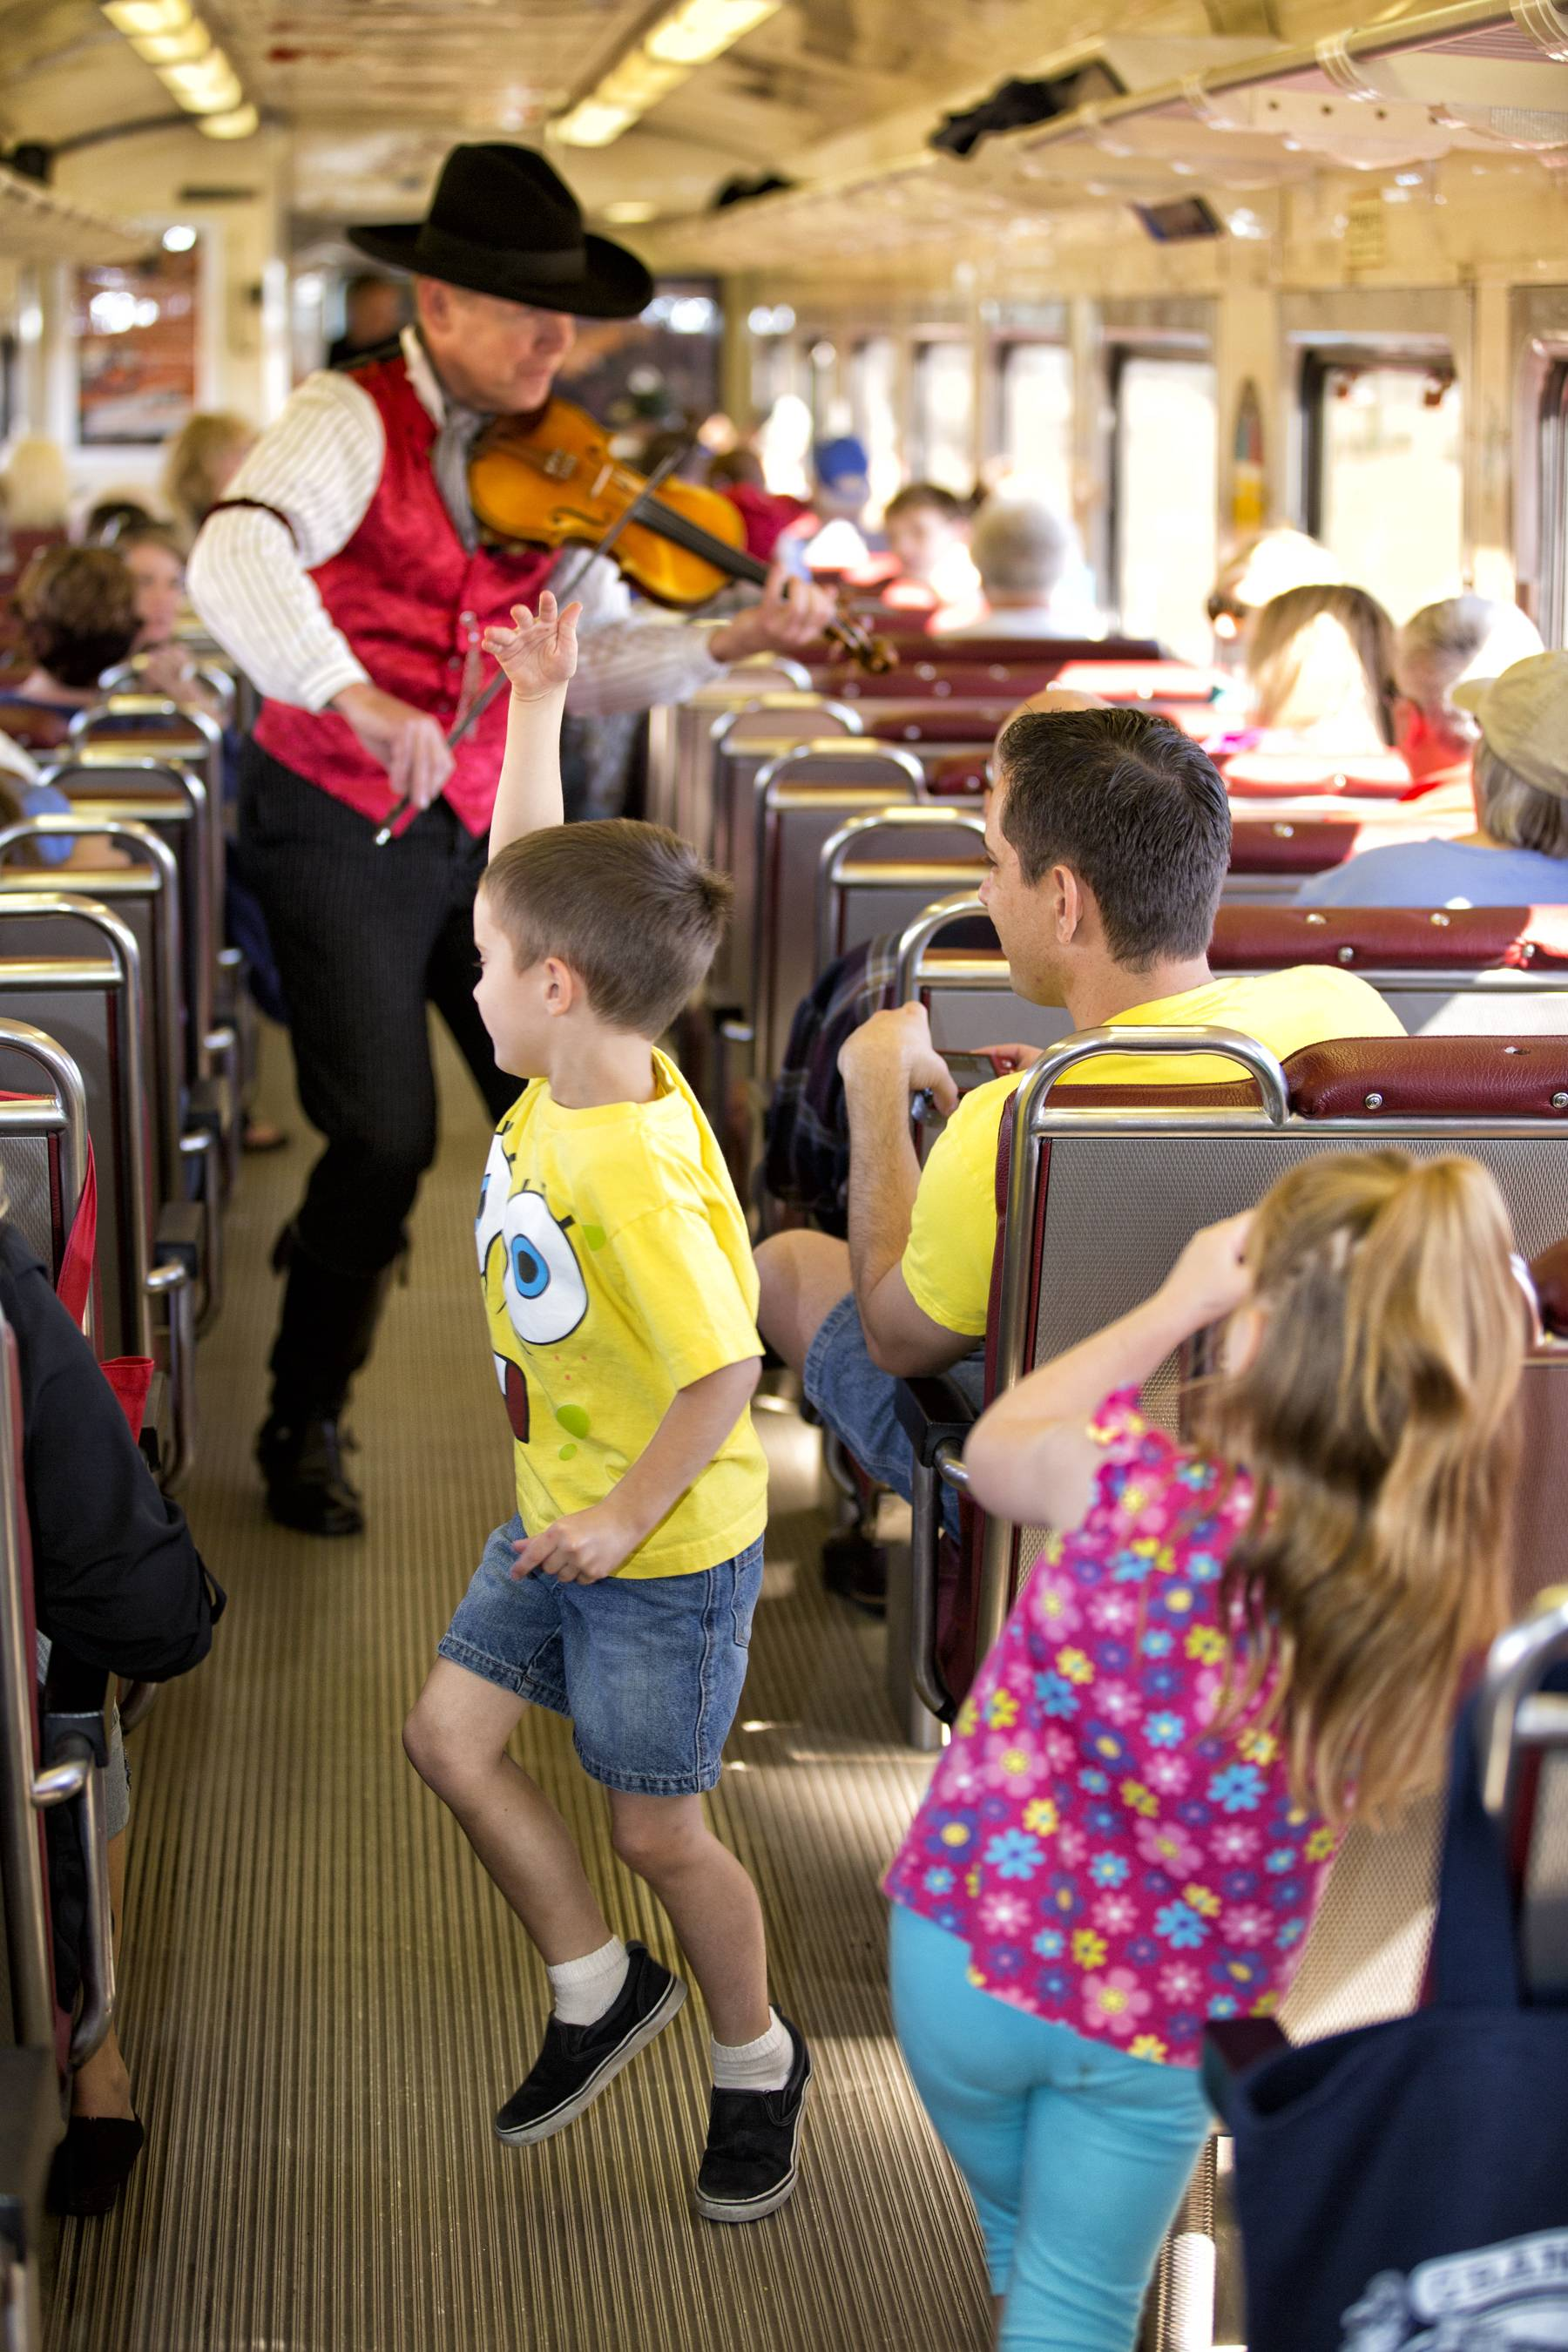 A performer plays violin onboard the railway train on its daily run between Williams, Arizona, and the Grand Canyon's South Rim.